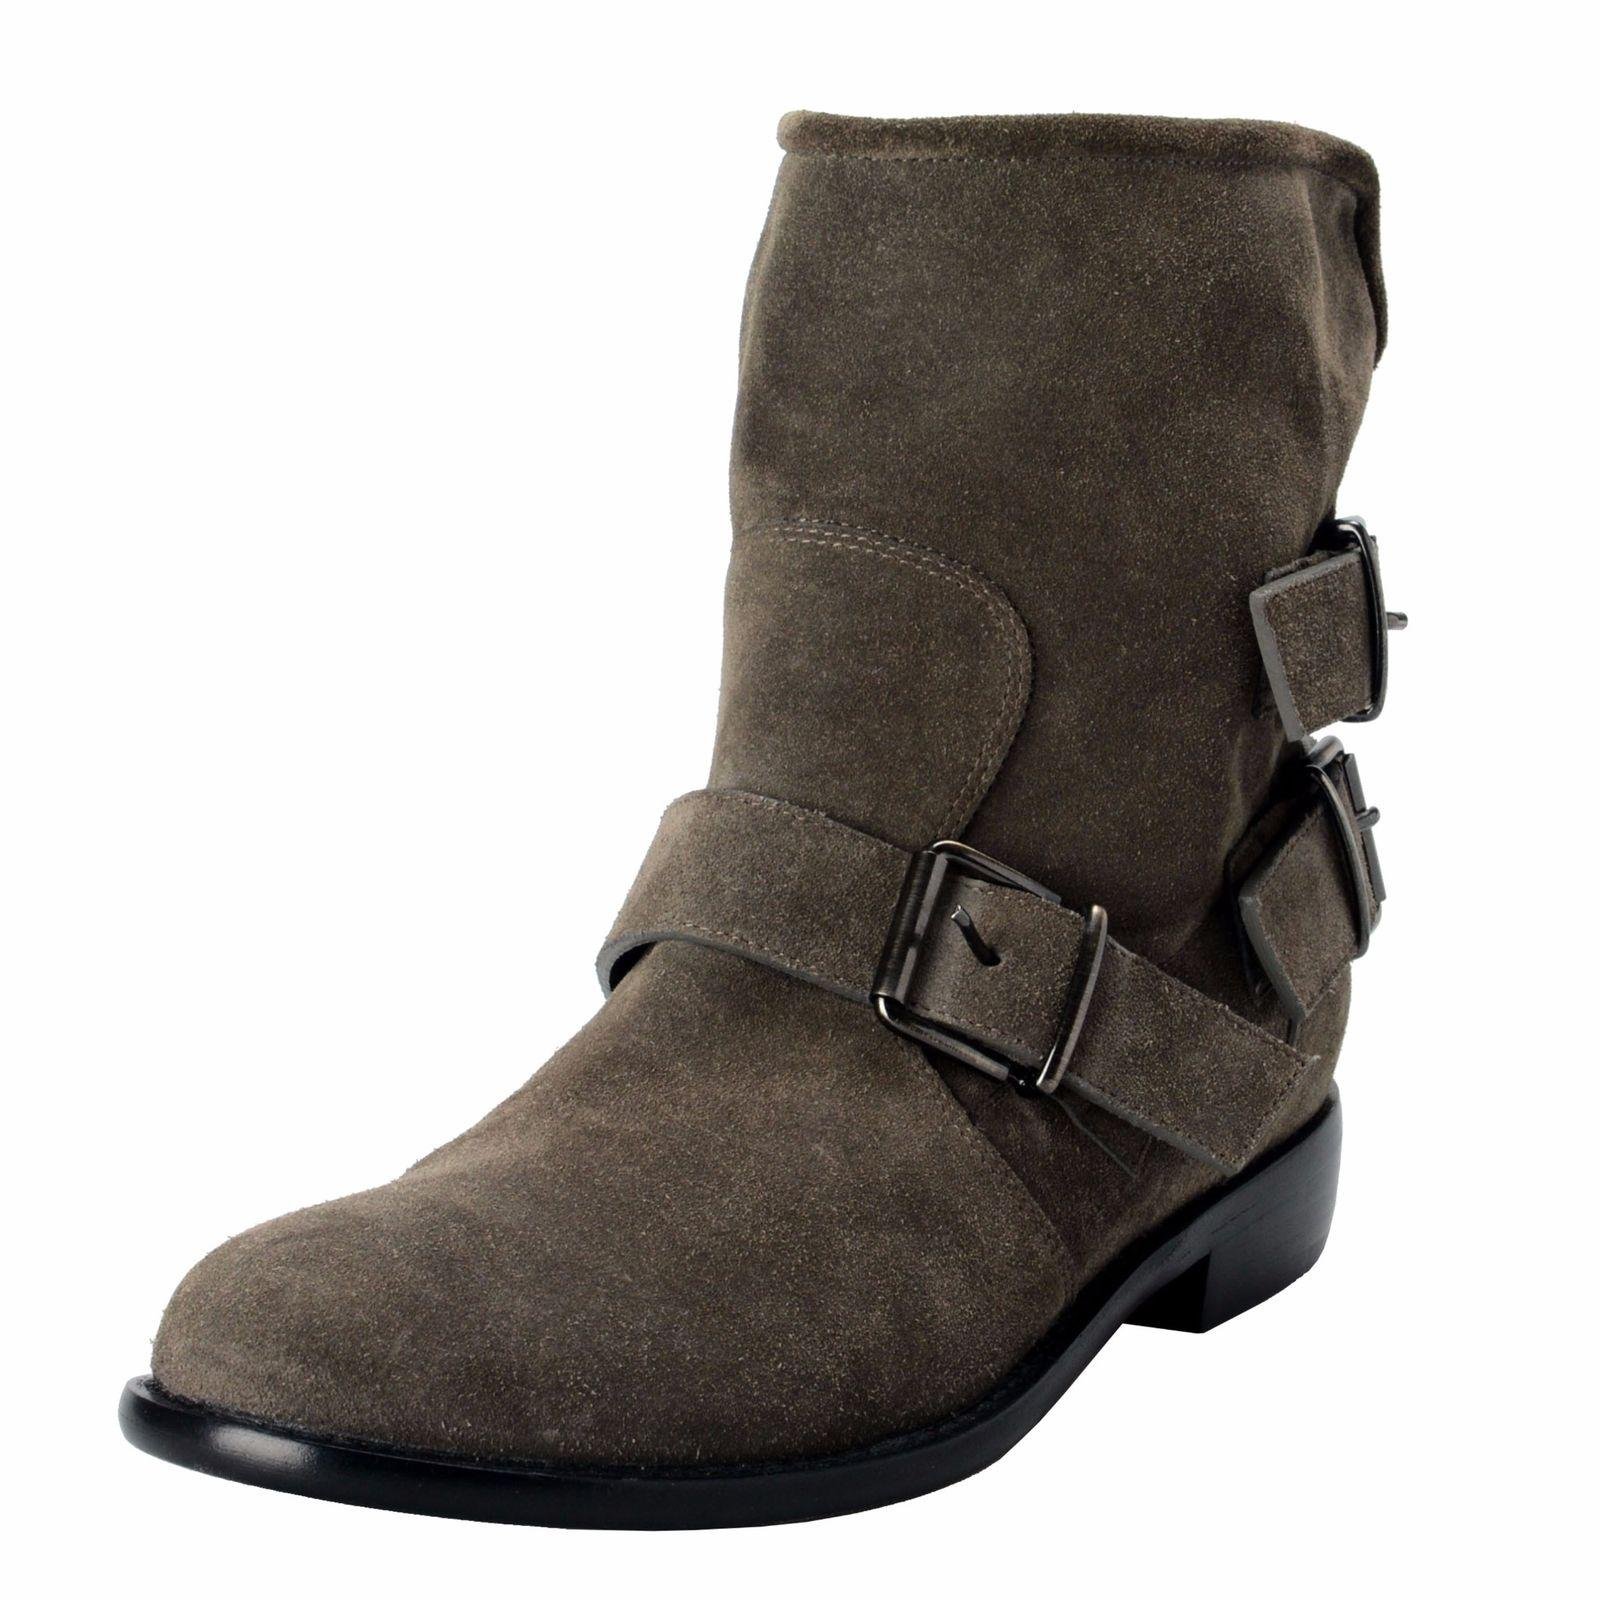 clearance shopping online outlet ebay DESIGN Region suede studded ankle boots zC45U8t0